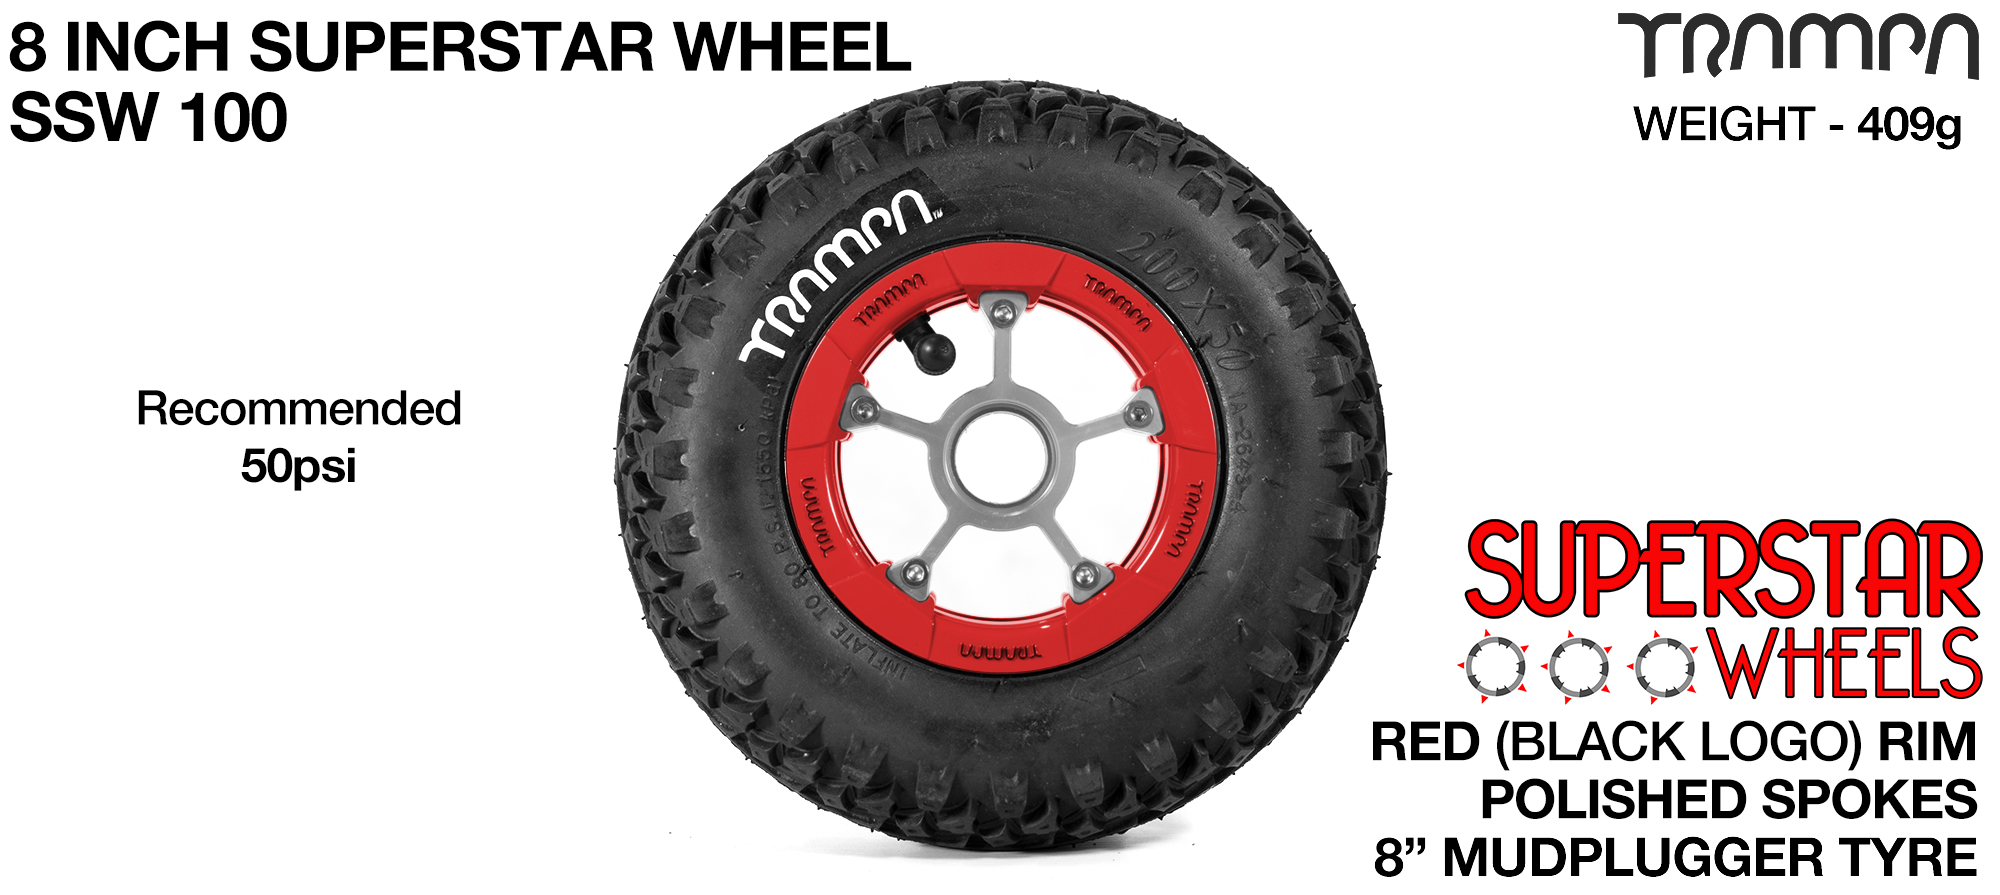 Superstar wheel -  Red Rim with Polished Spokes and Trampa Deep Tyre - 8 inch wheel